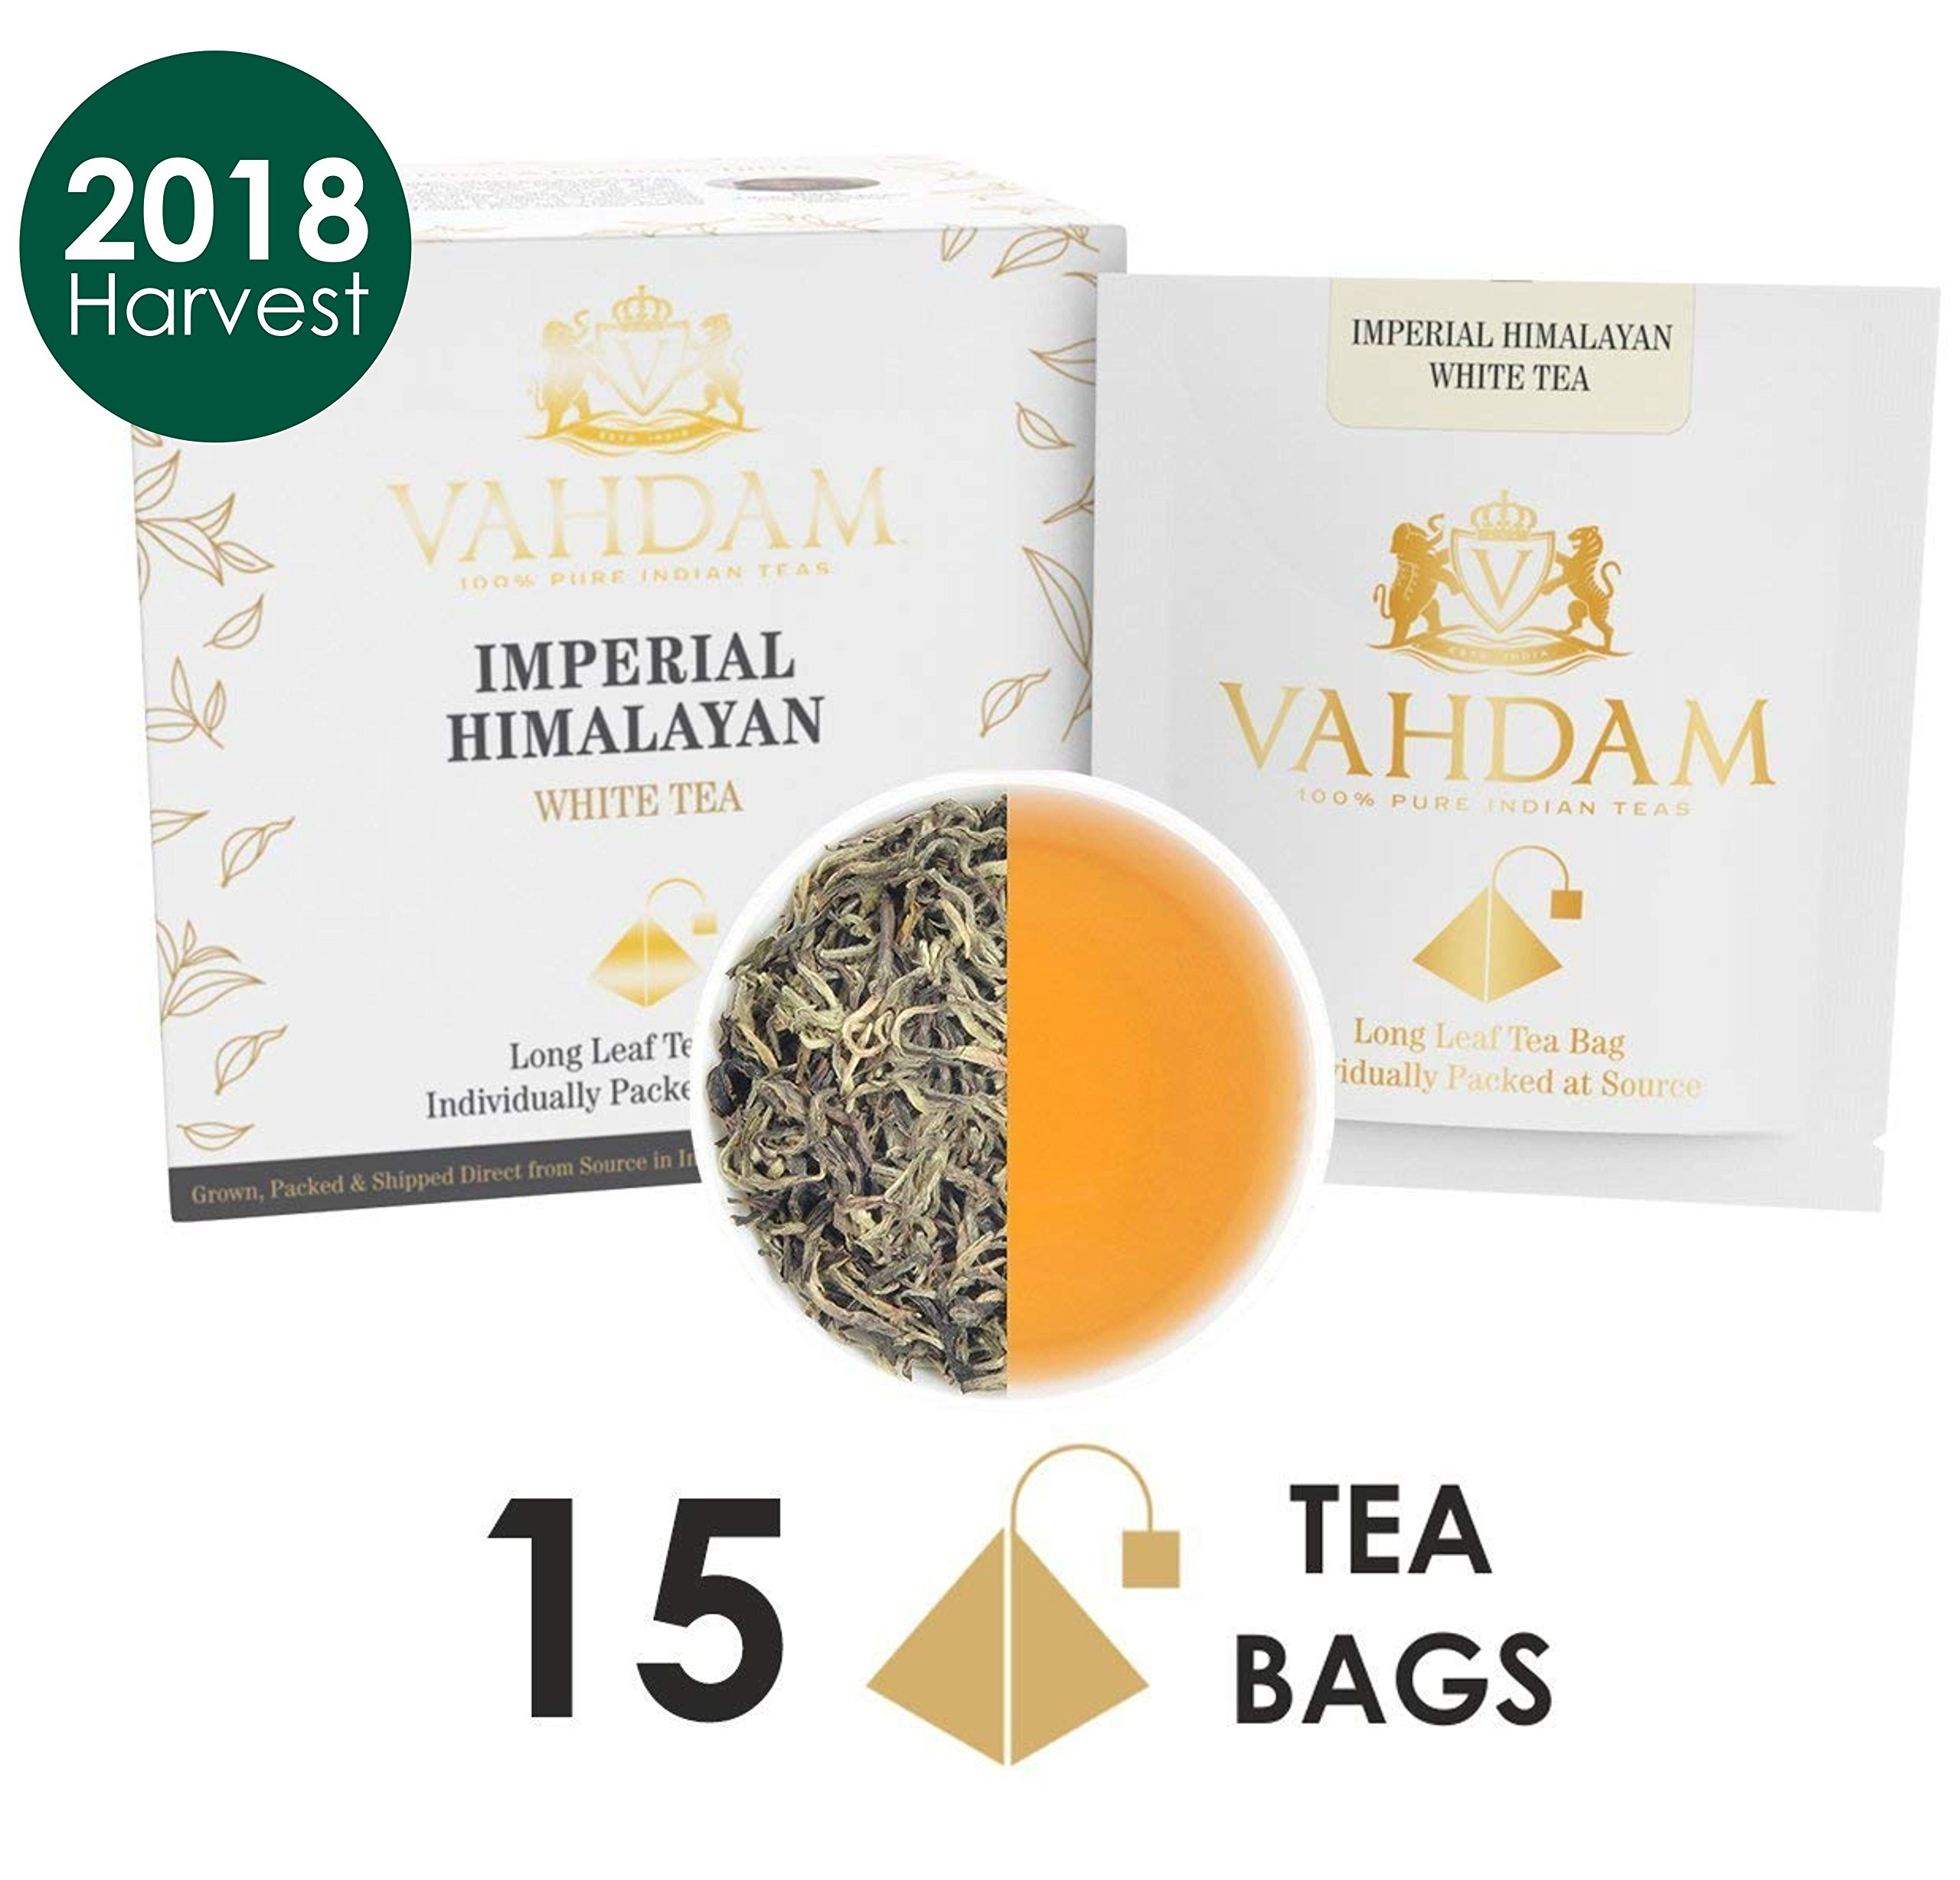 Imperial Himalayan White Tea 15 Tea Bags, Long Leaf Pyramid White Tea Bags Handpicked Harvest From High Elevation Estates, Pure White Tea, 100% Healthy And Natural, Unblended